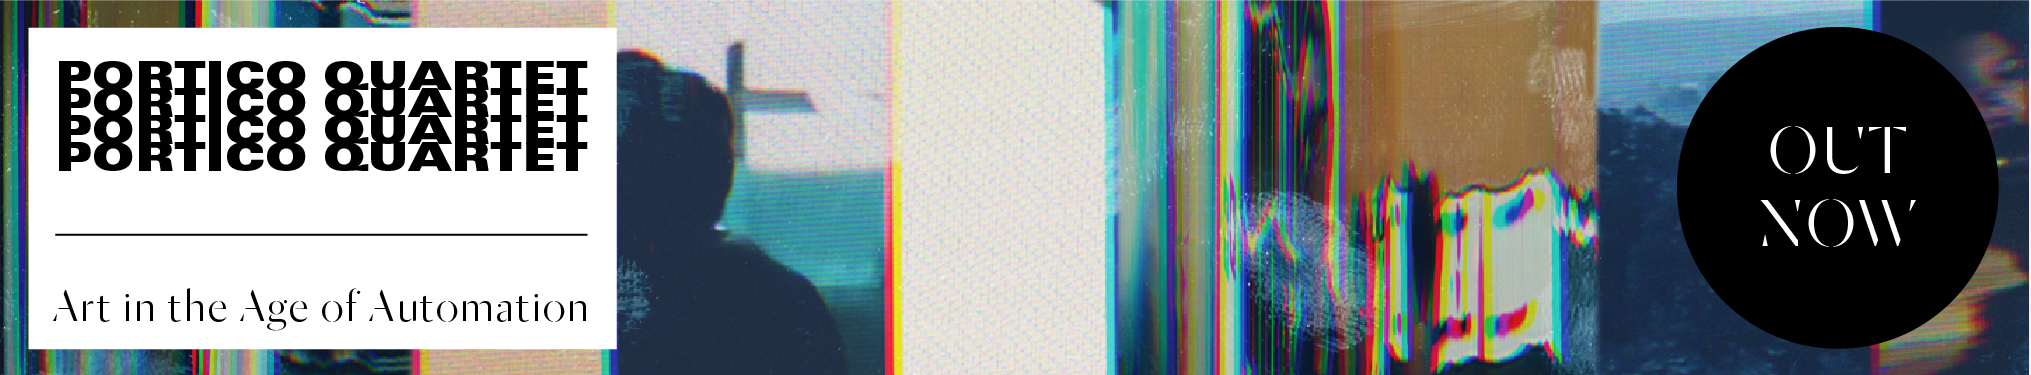 PQ BANDCAMP HEADER OUT NOW-01